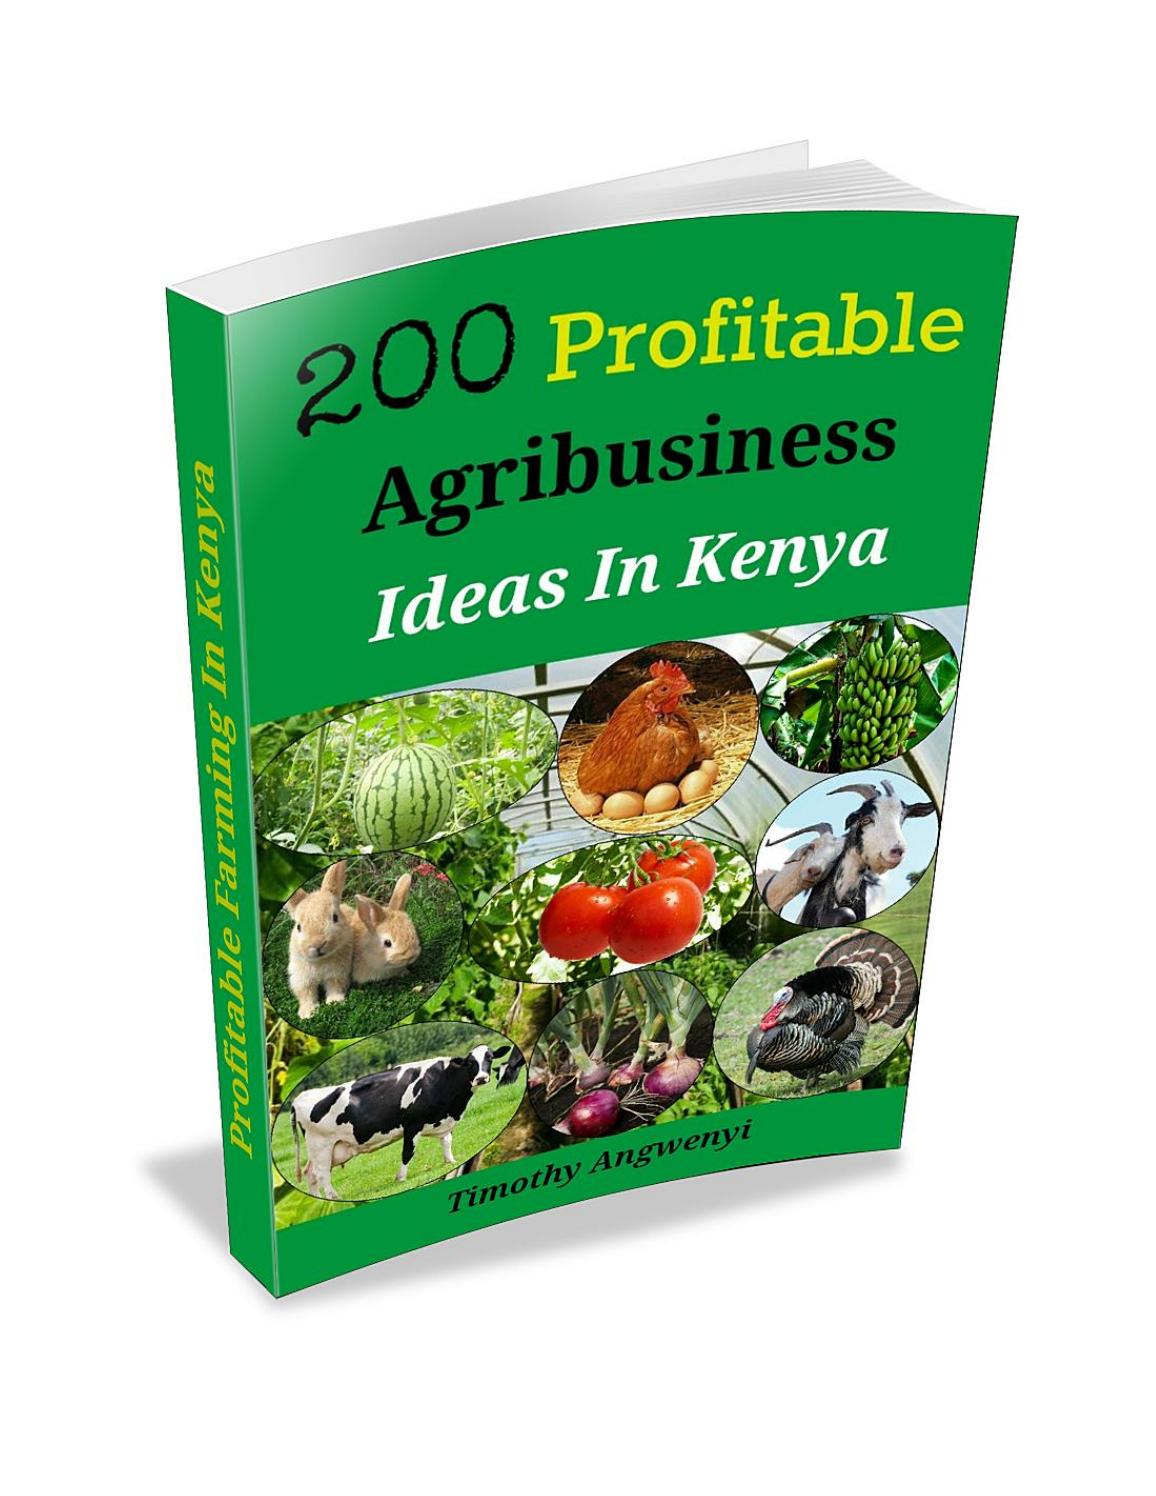 200 profitable agribusiness ideas 1 by I love reading - issuu